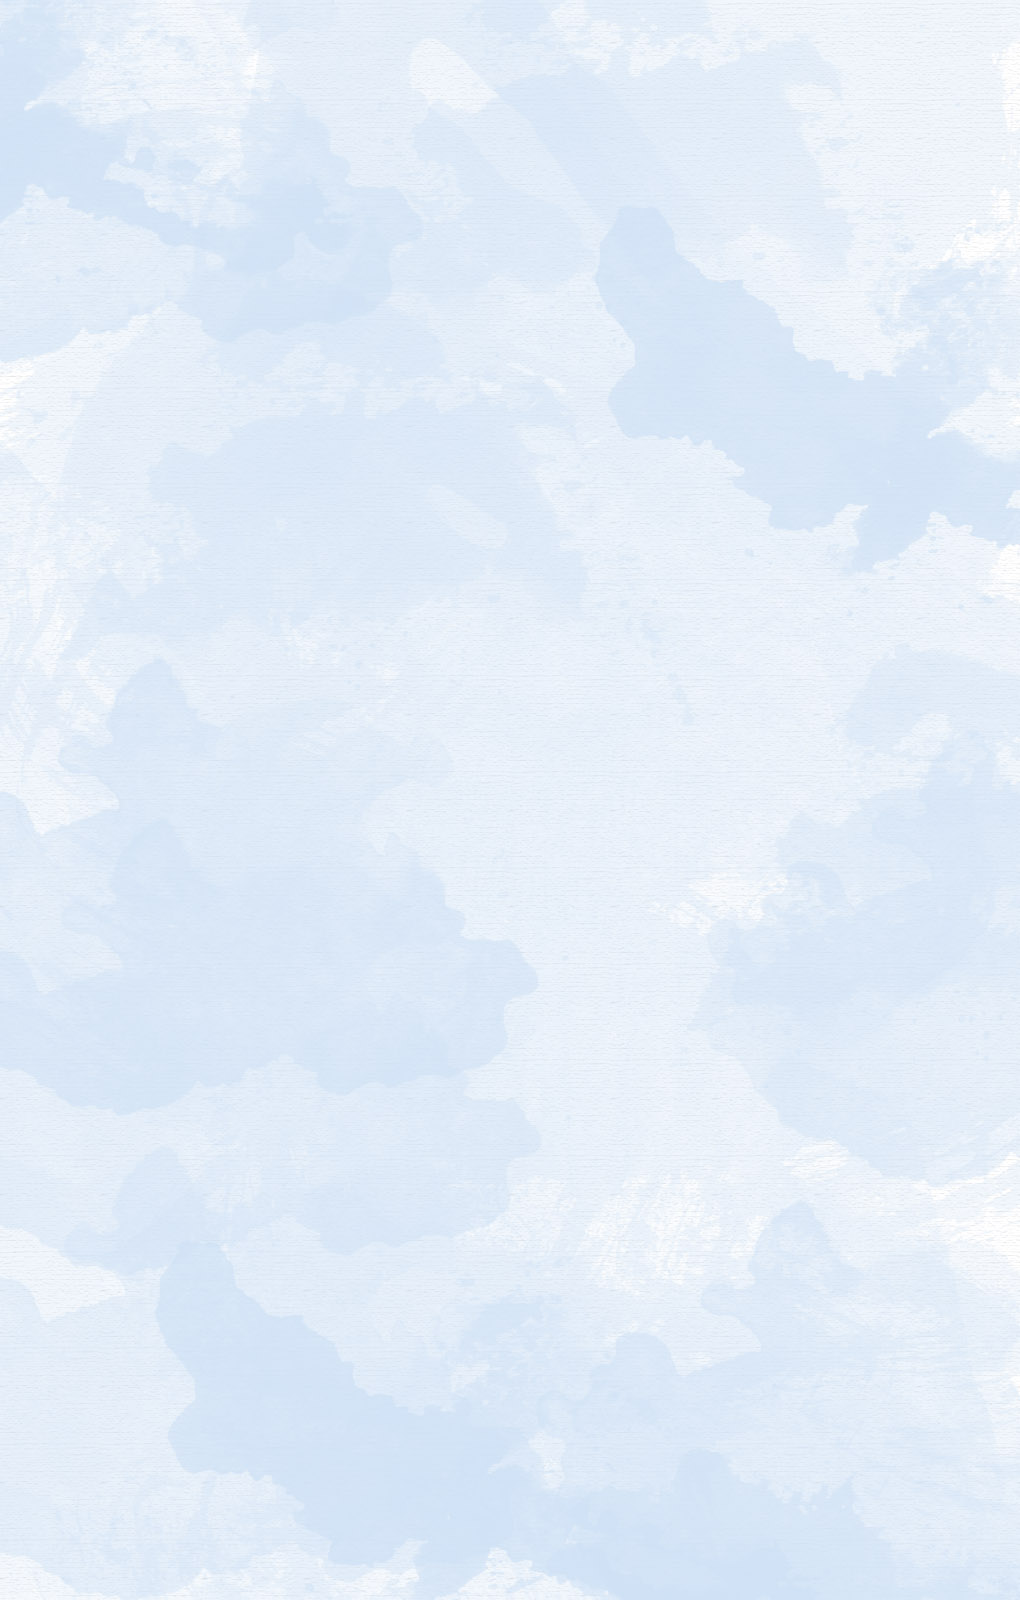 Tumblr Light Blue Backgrounds